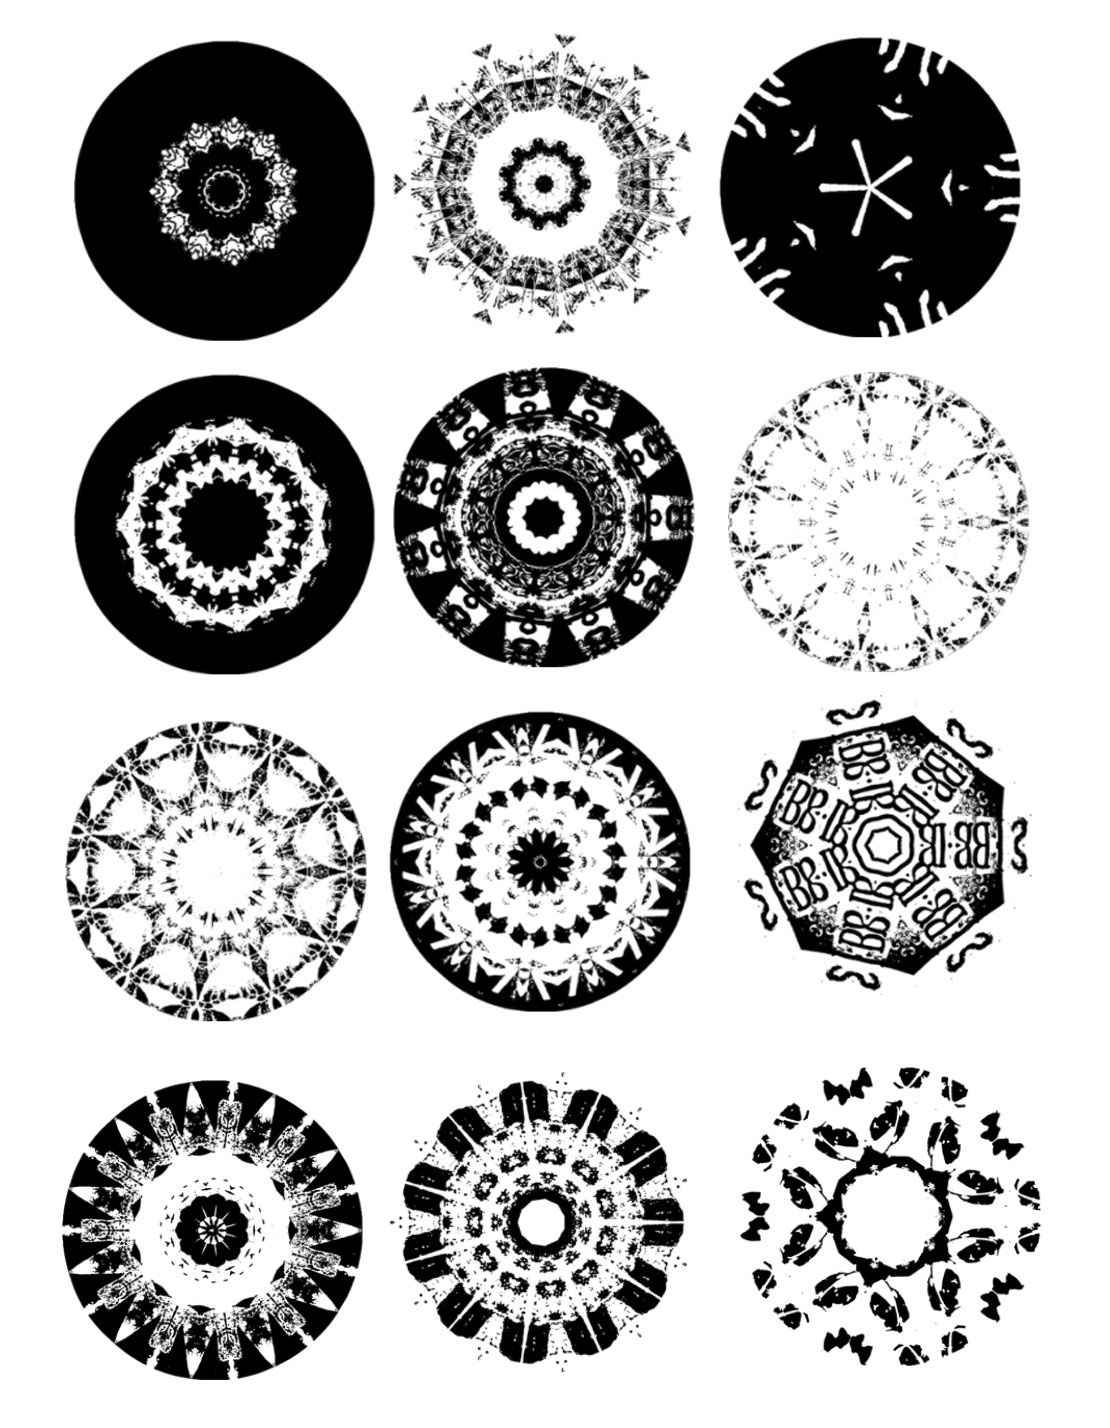 Brushes design with black and white mandalas